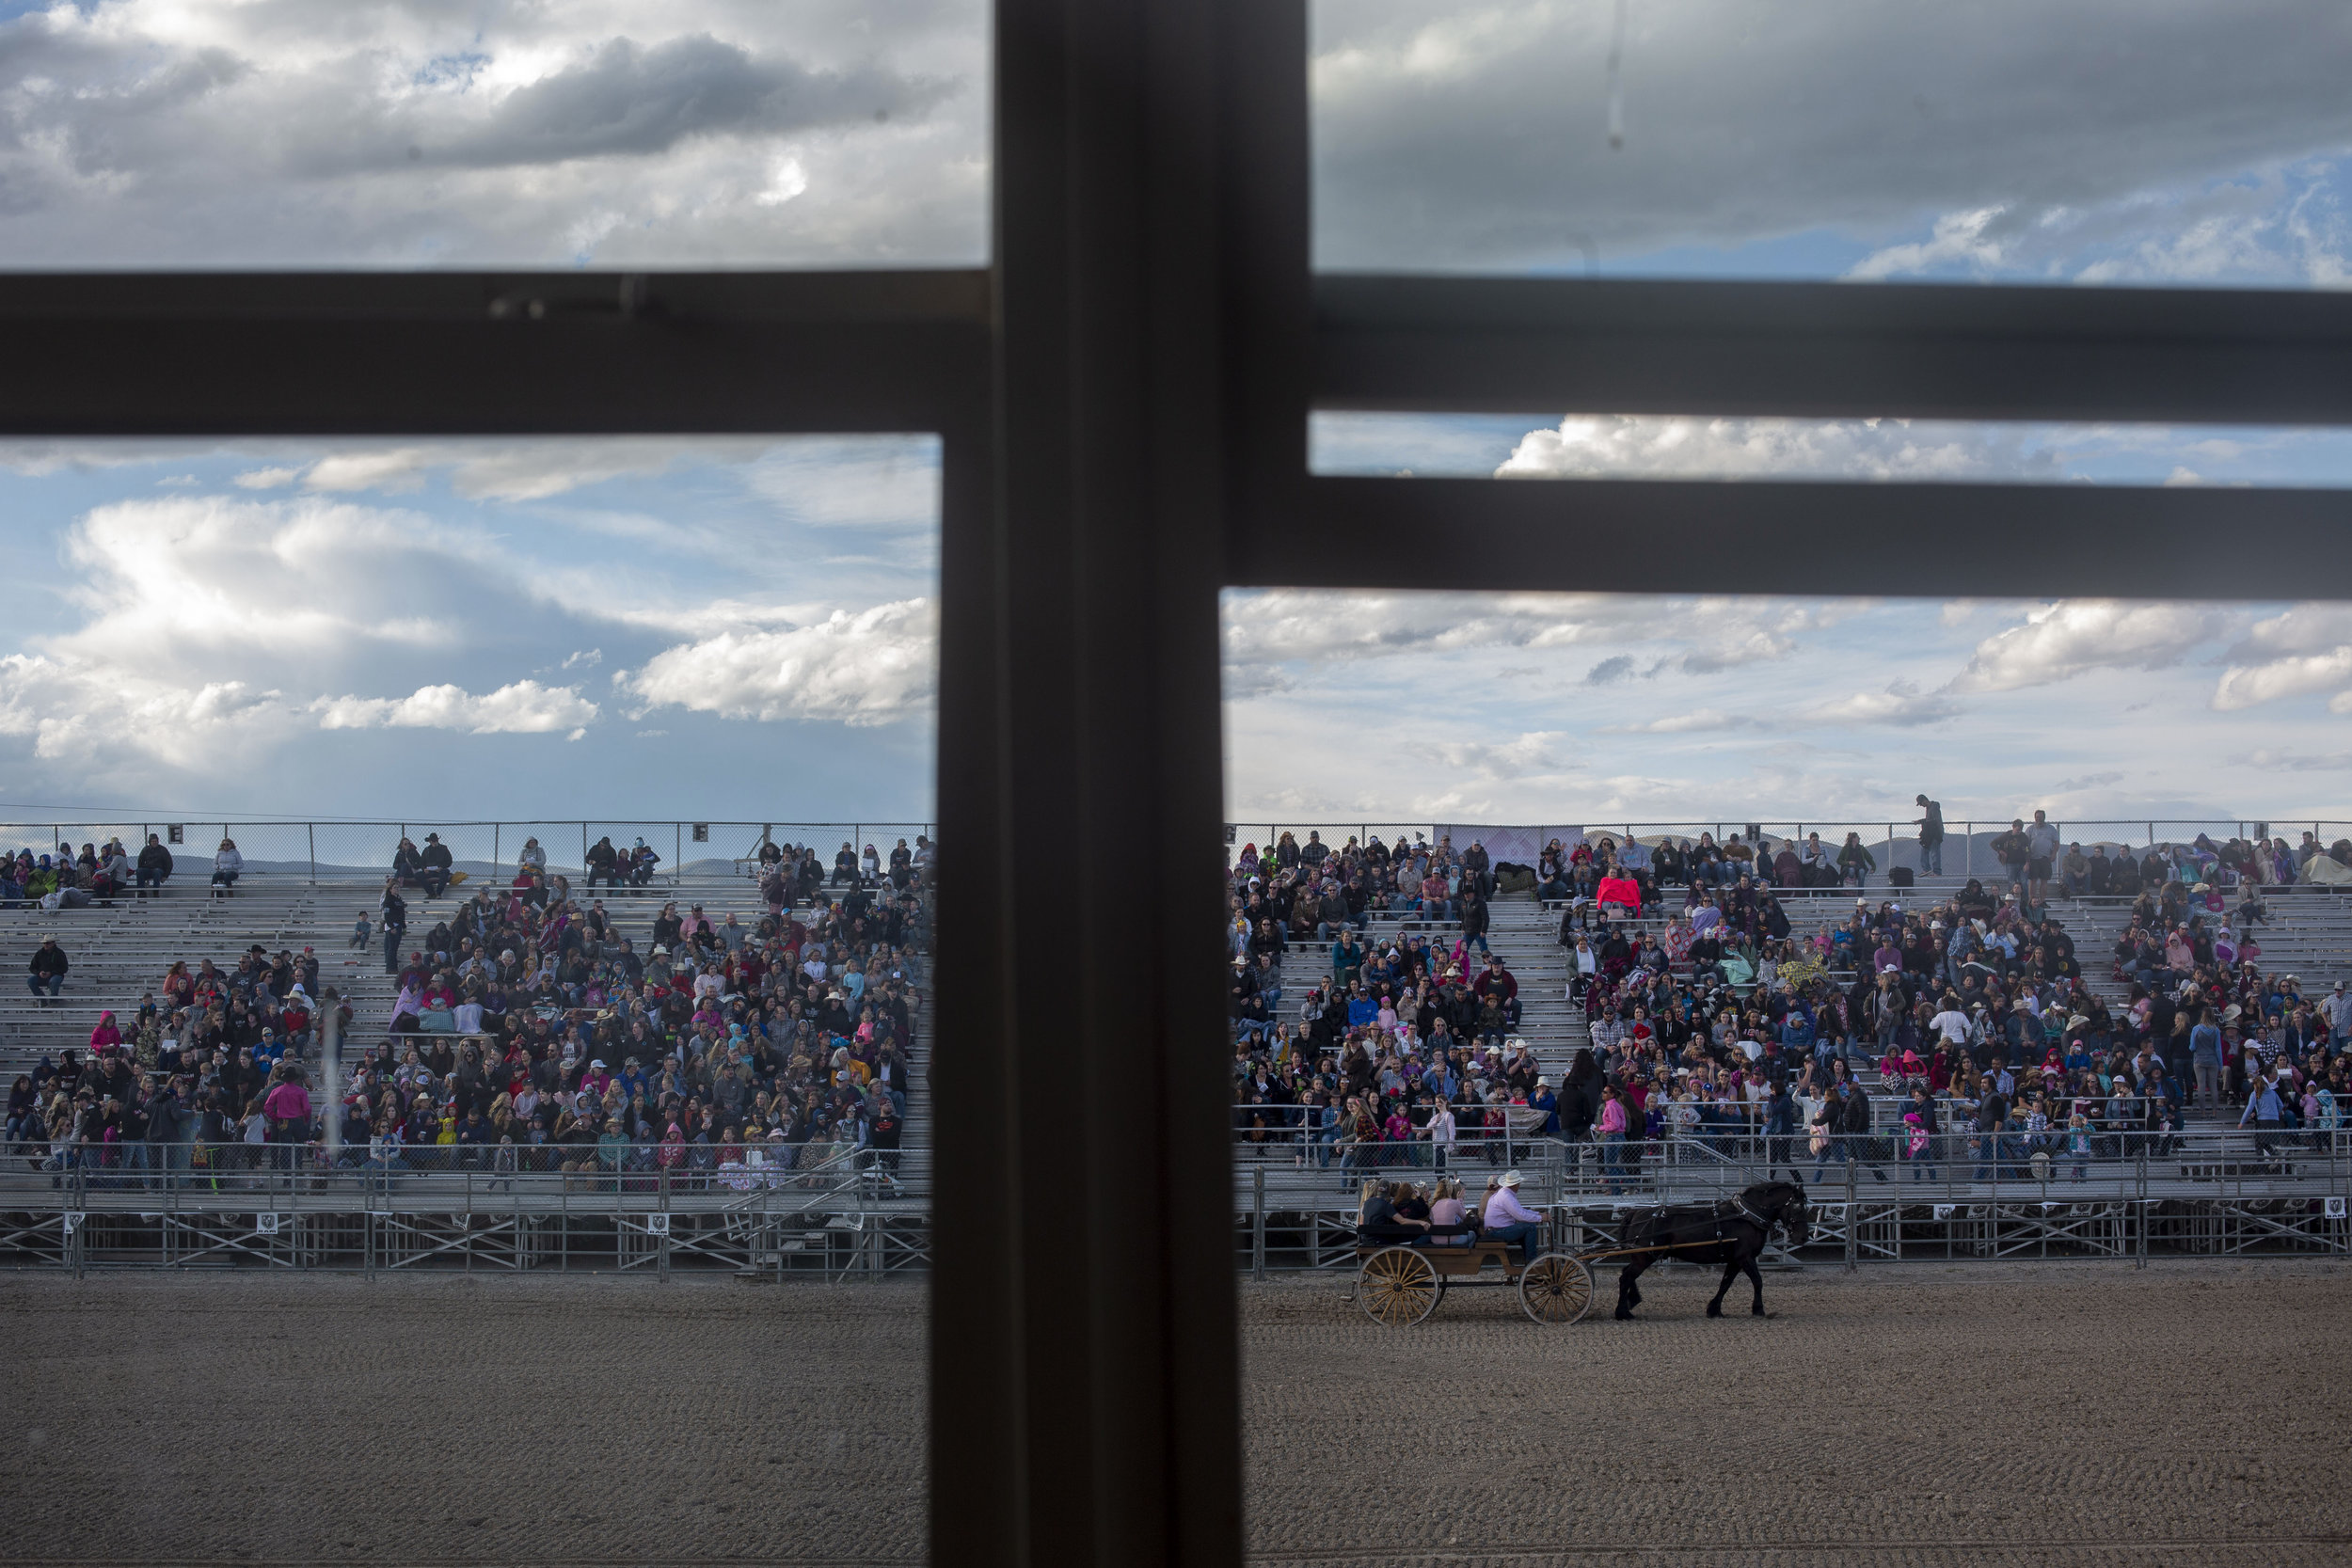 A horse and carriage passes through the arena at the Pony Express Rodeo Saturday, May 25, 2019 at Eagle Mountain, Utah.